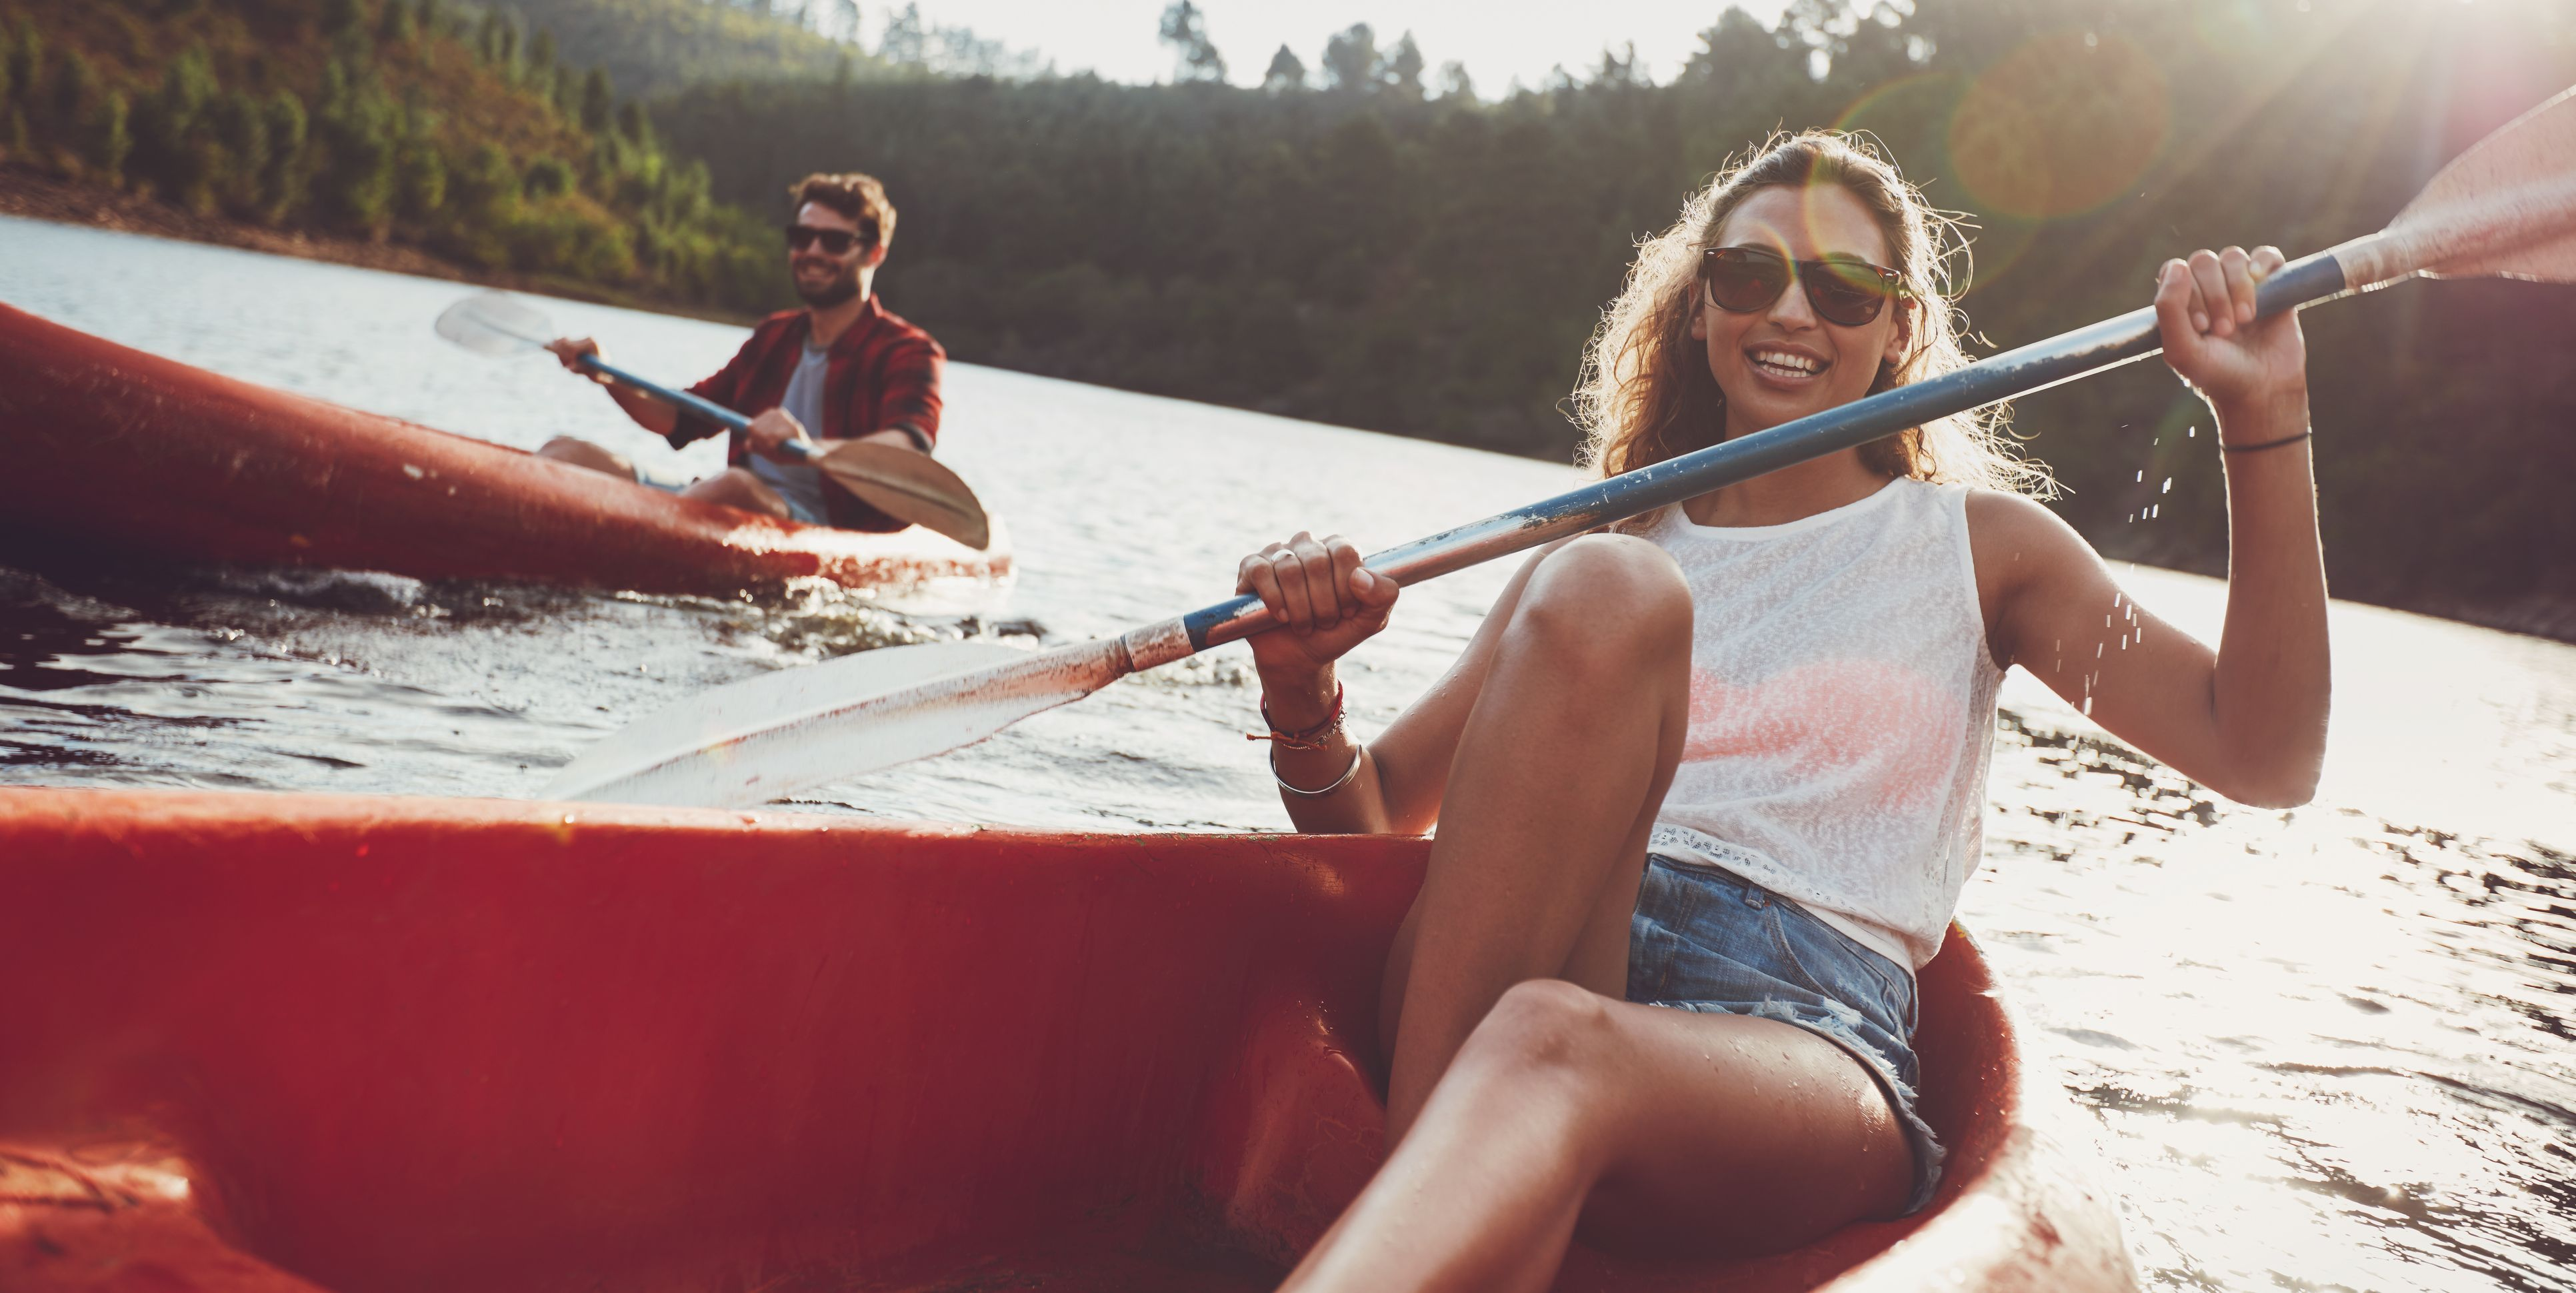 Young people canoeing in a lake